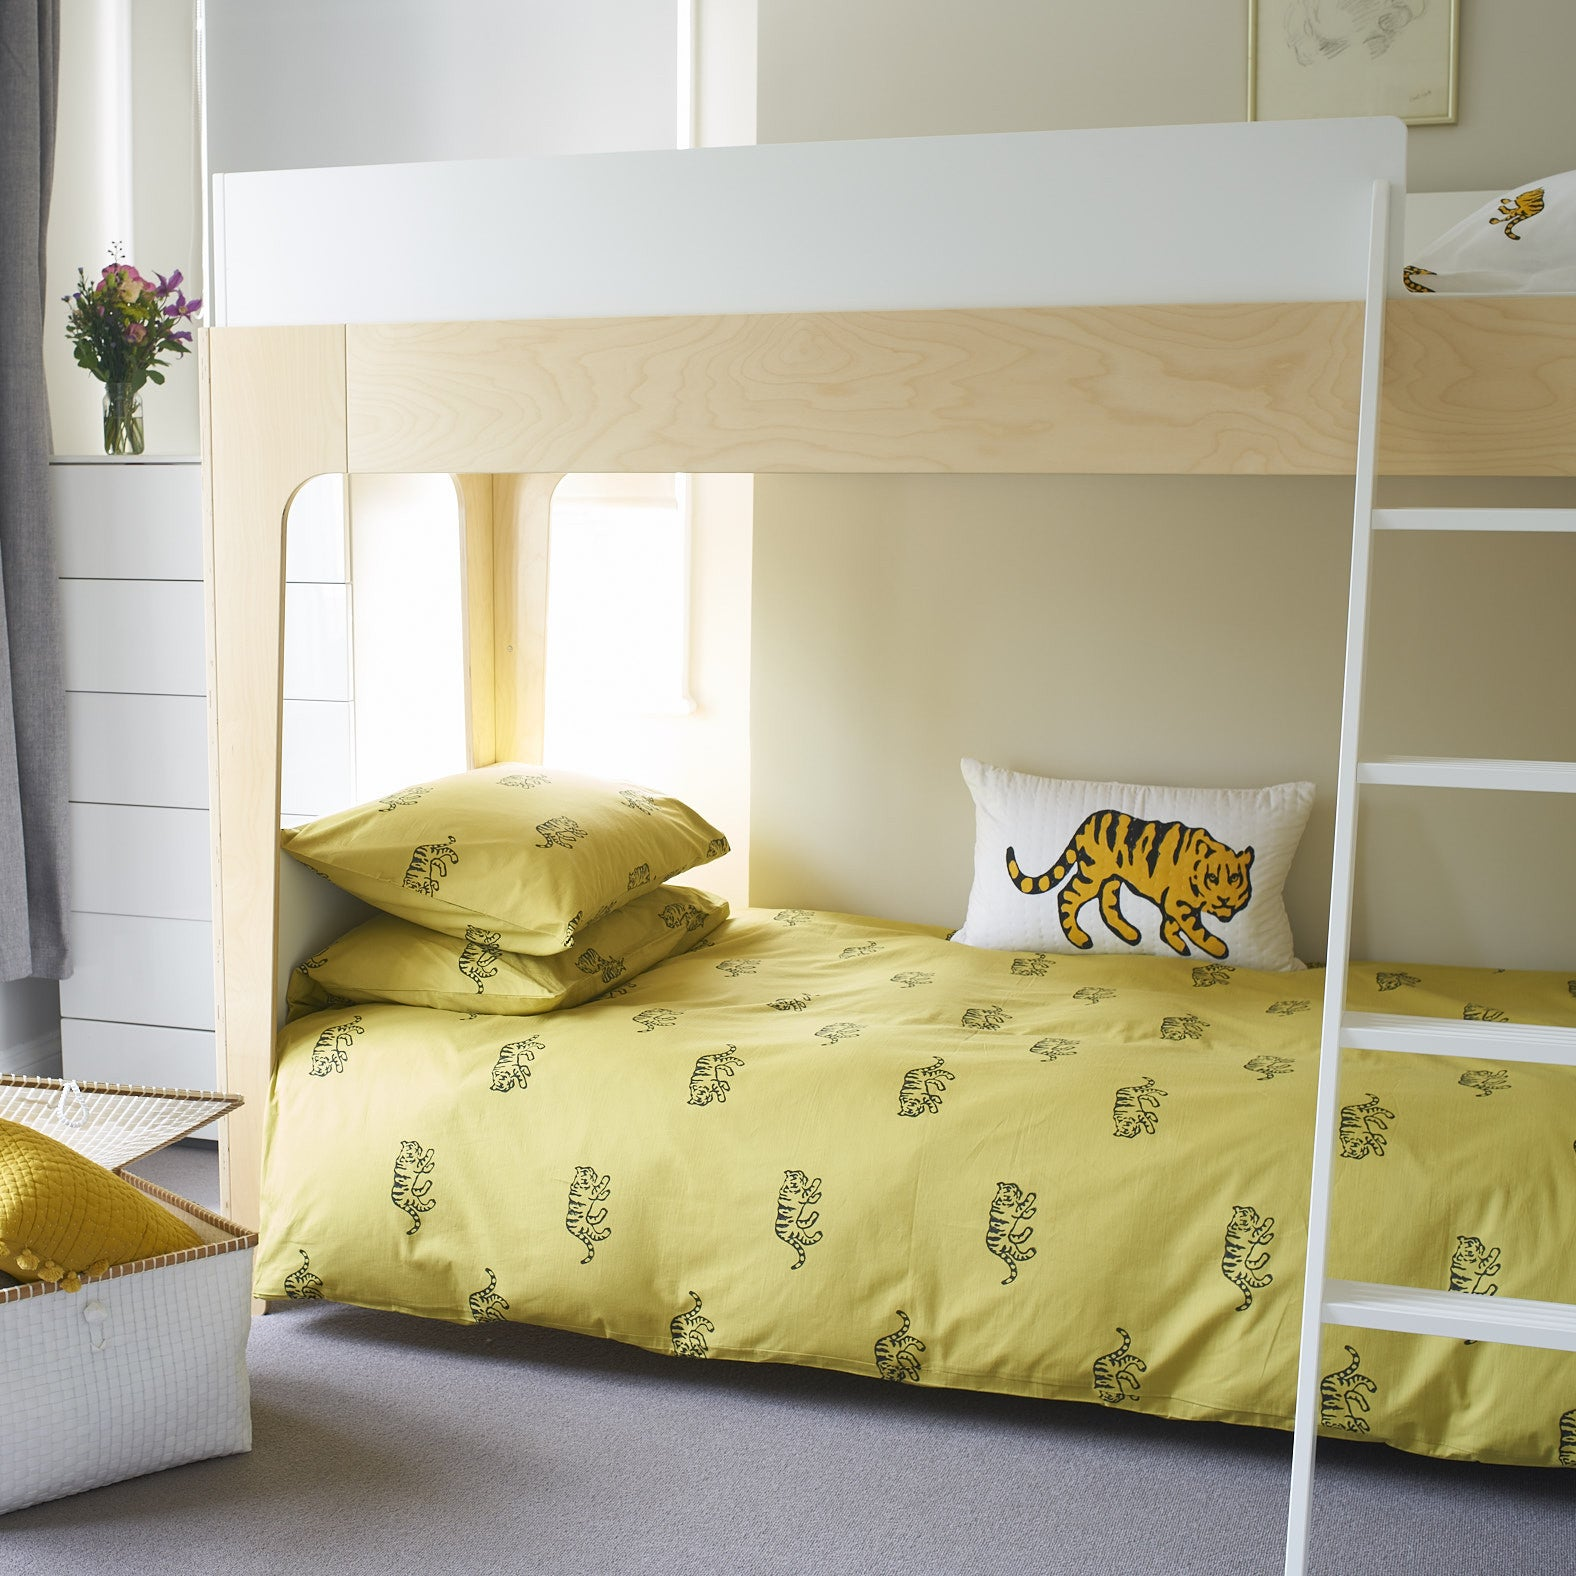 Ochre Tiger single duvet cover